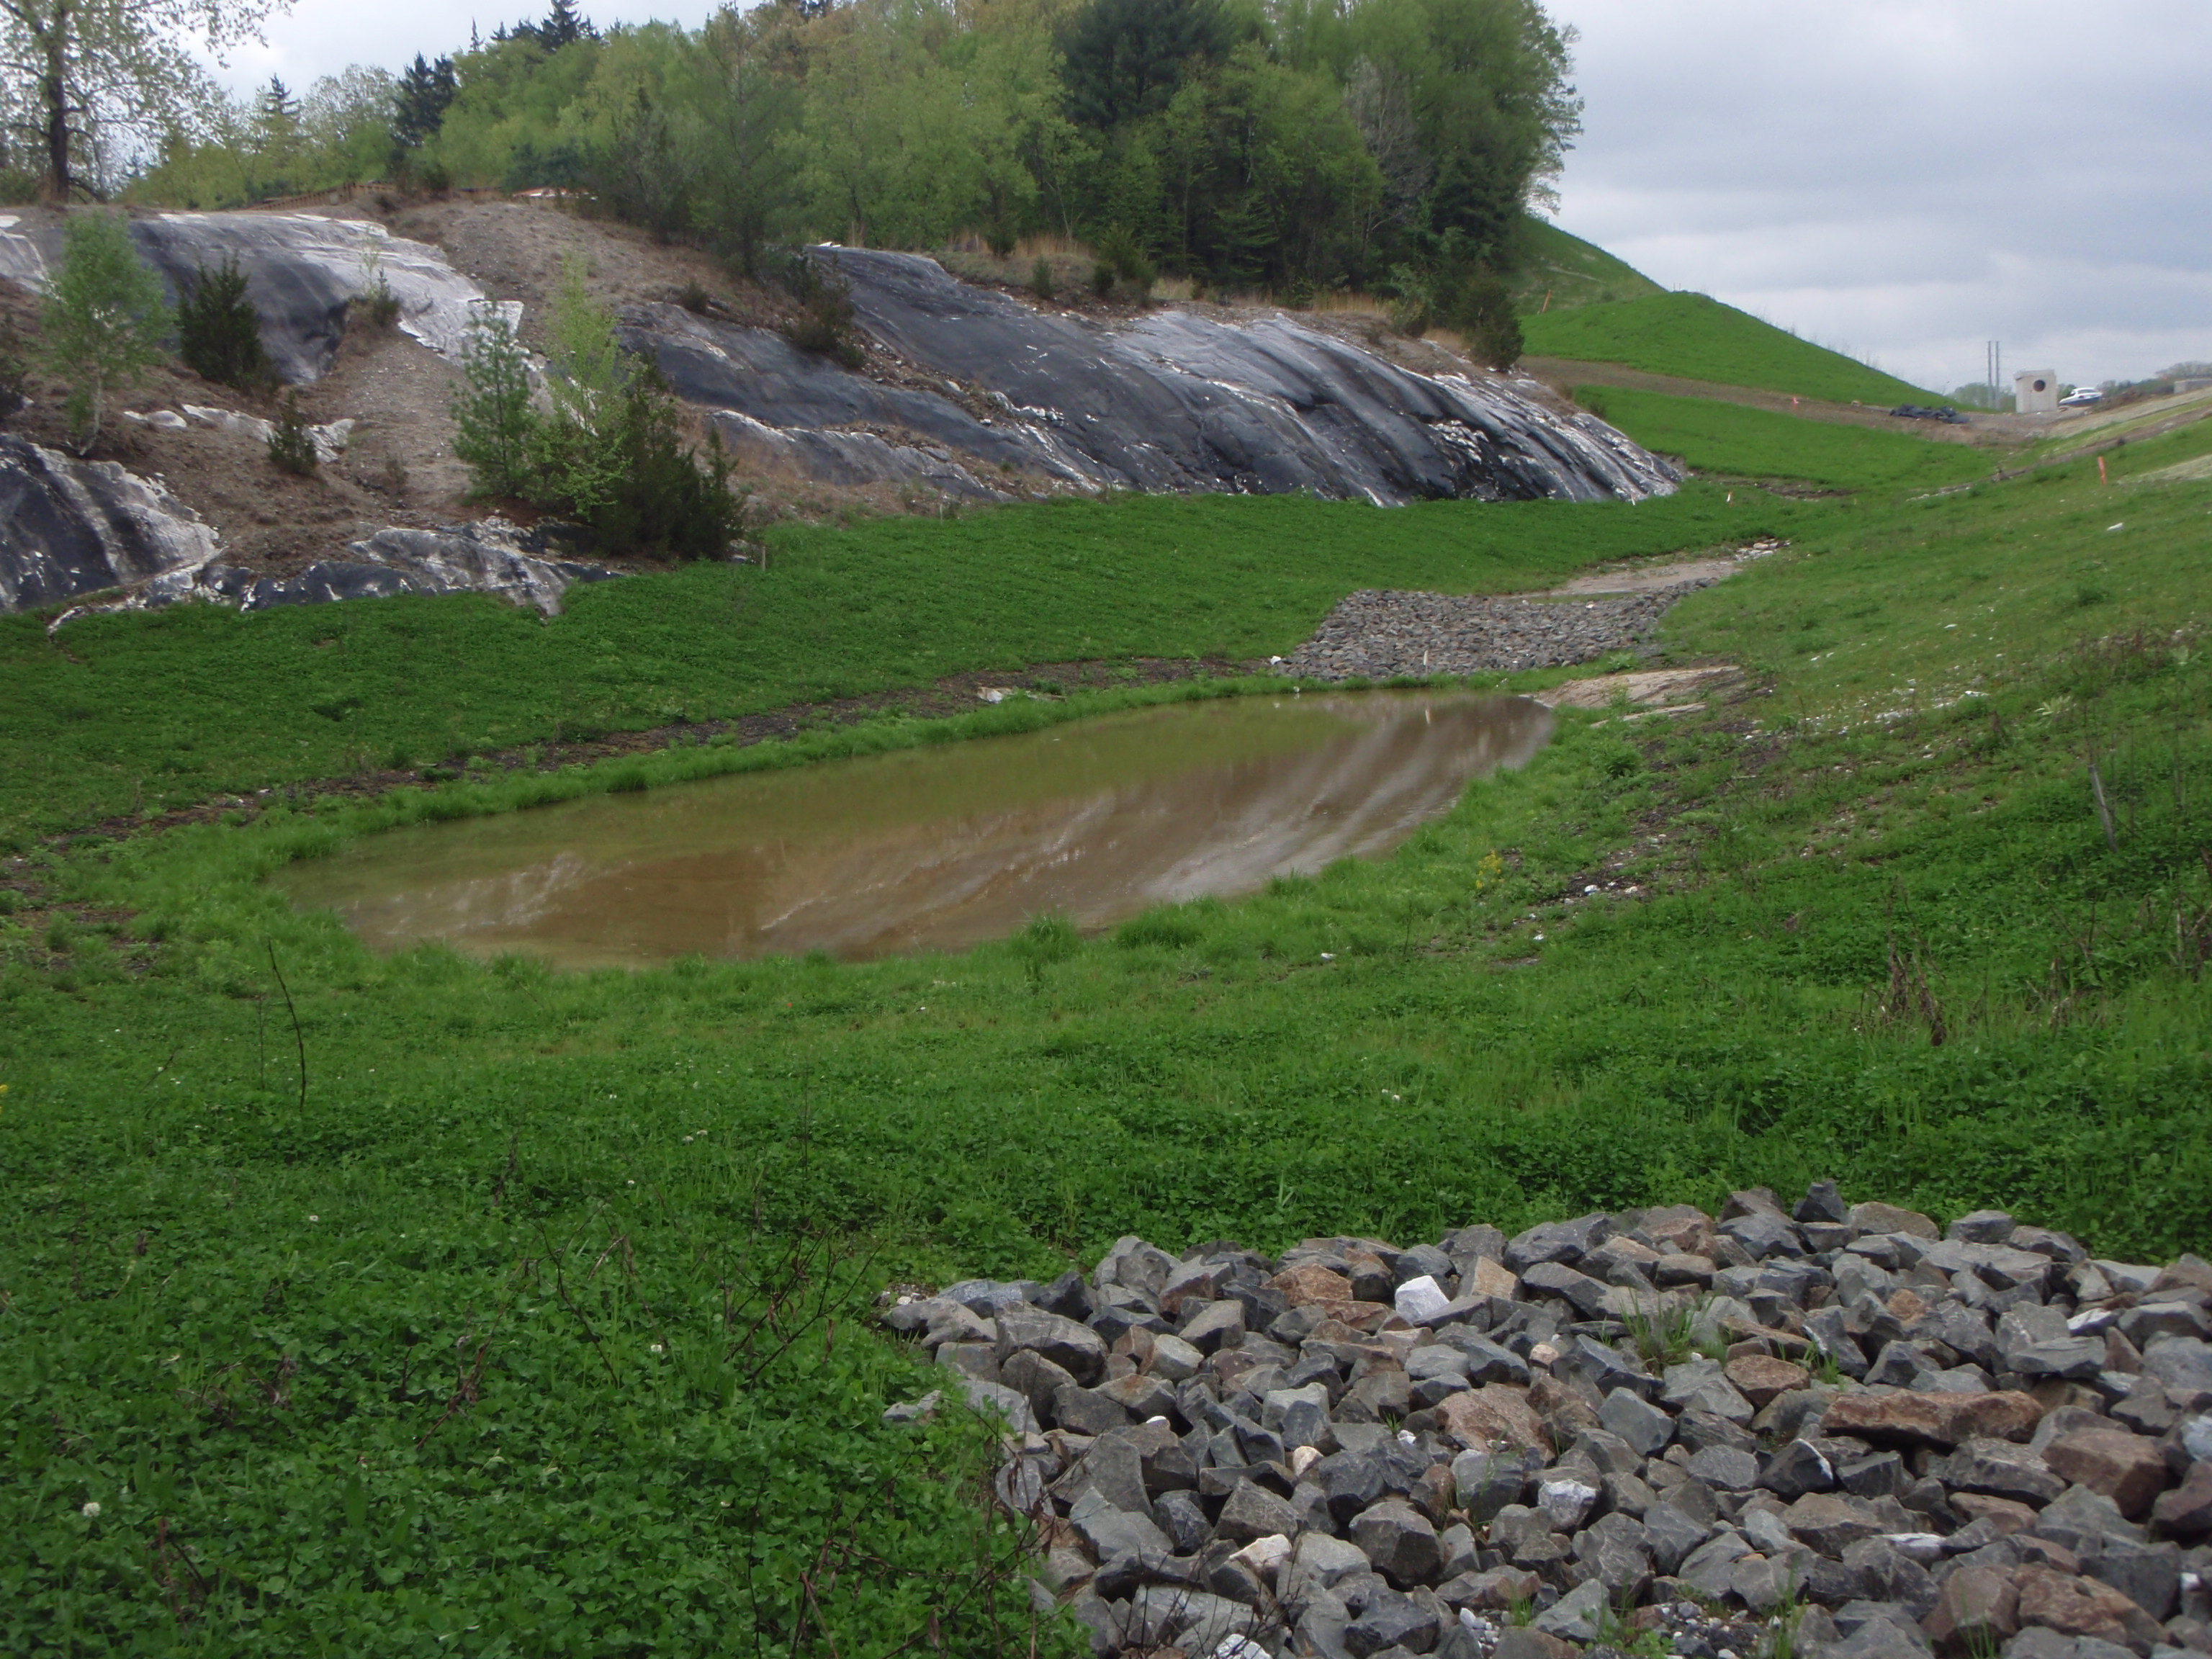 Stream Bank Erosion After